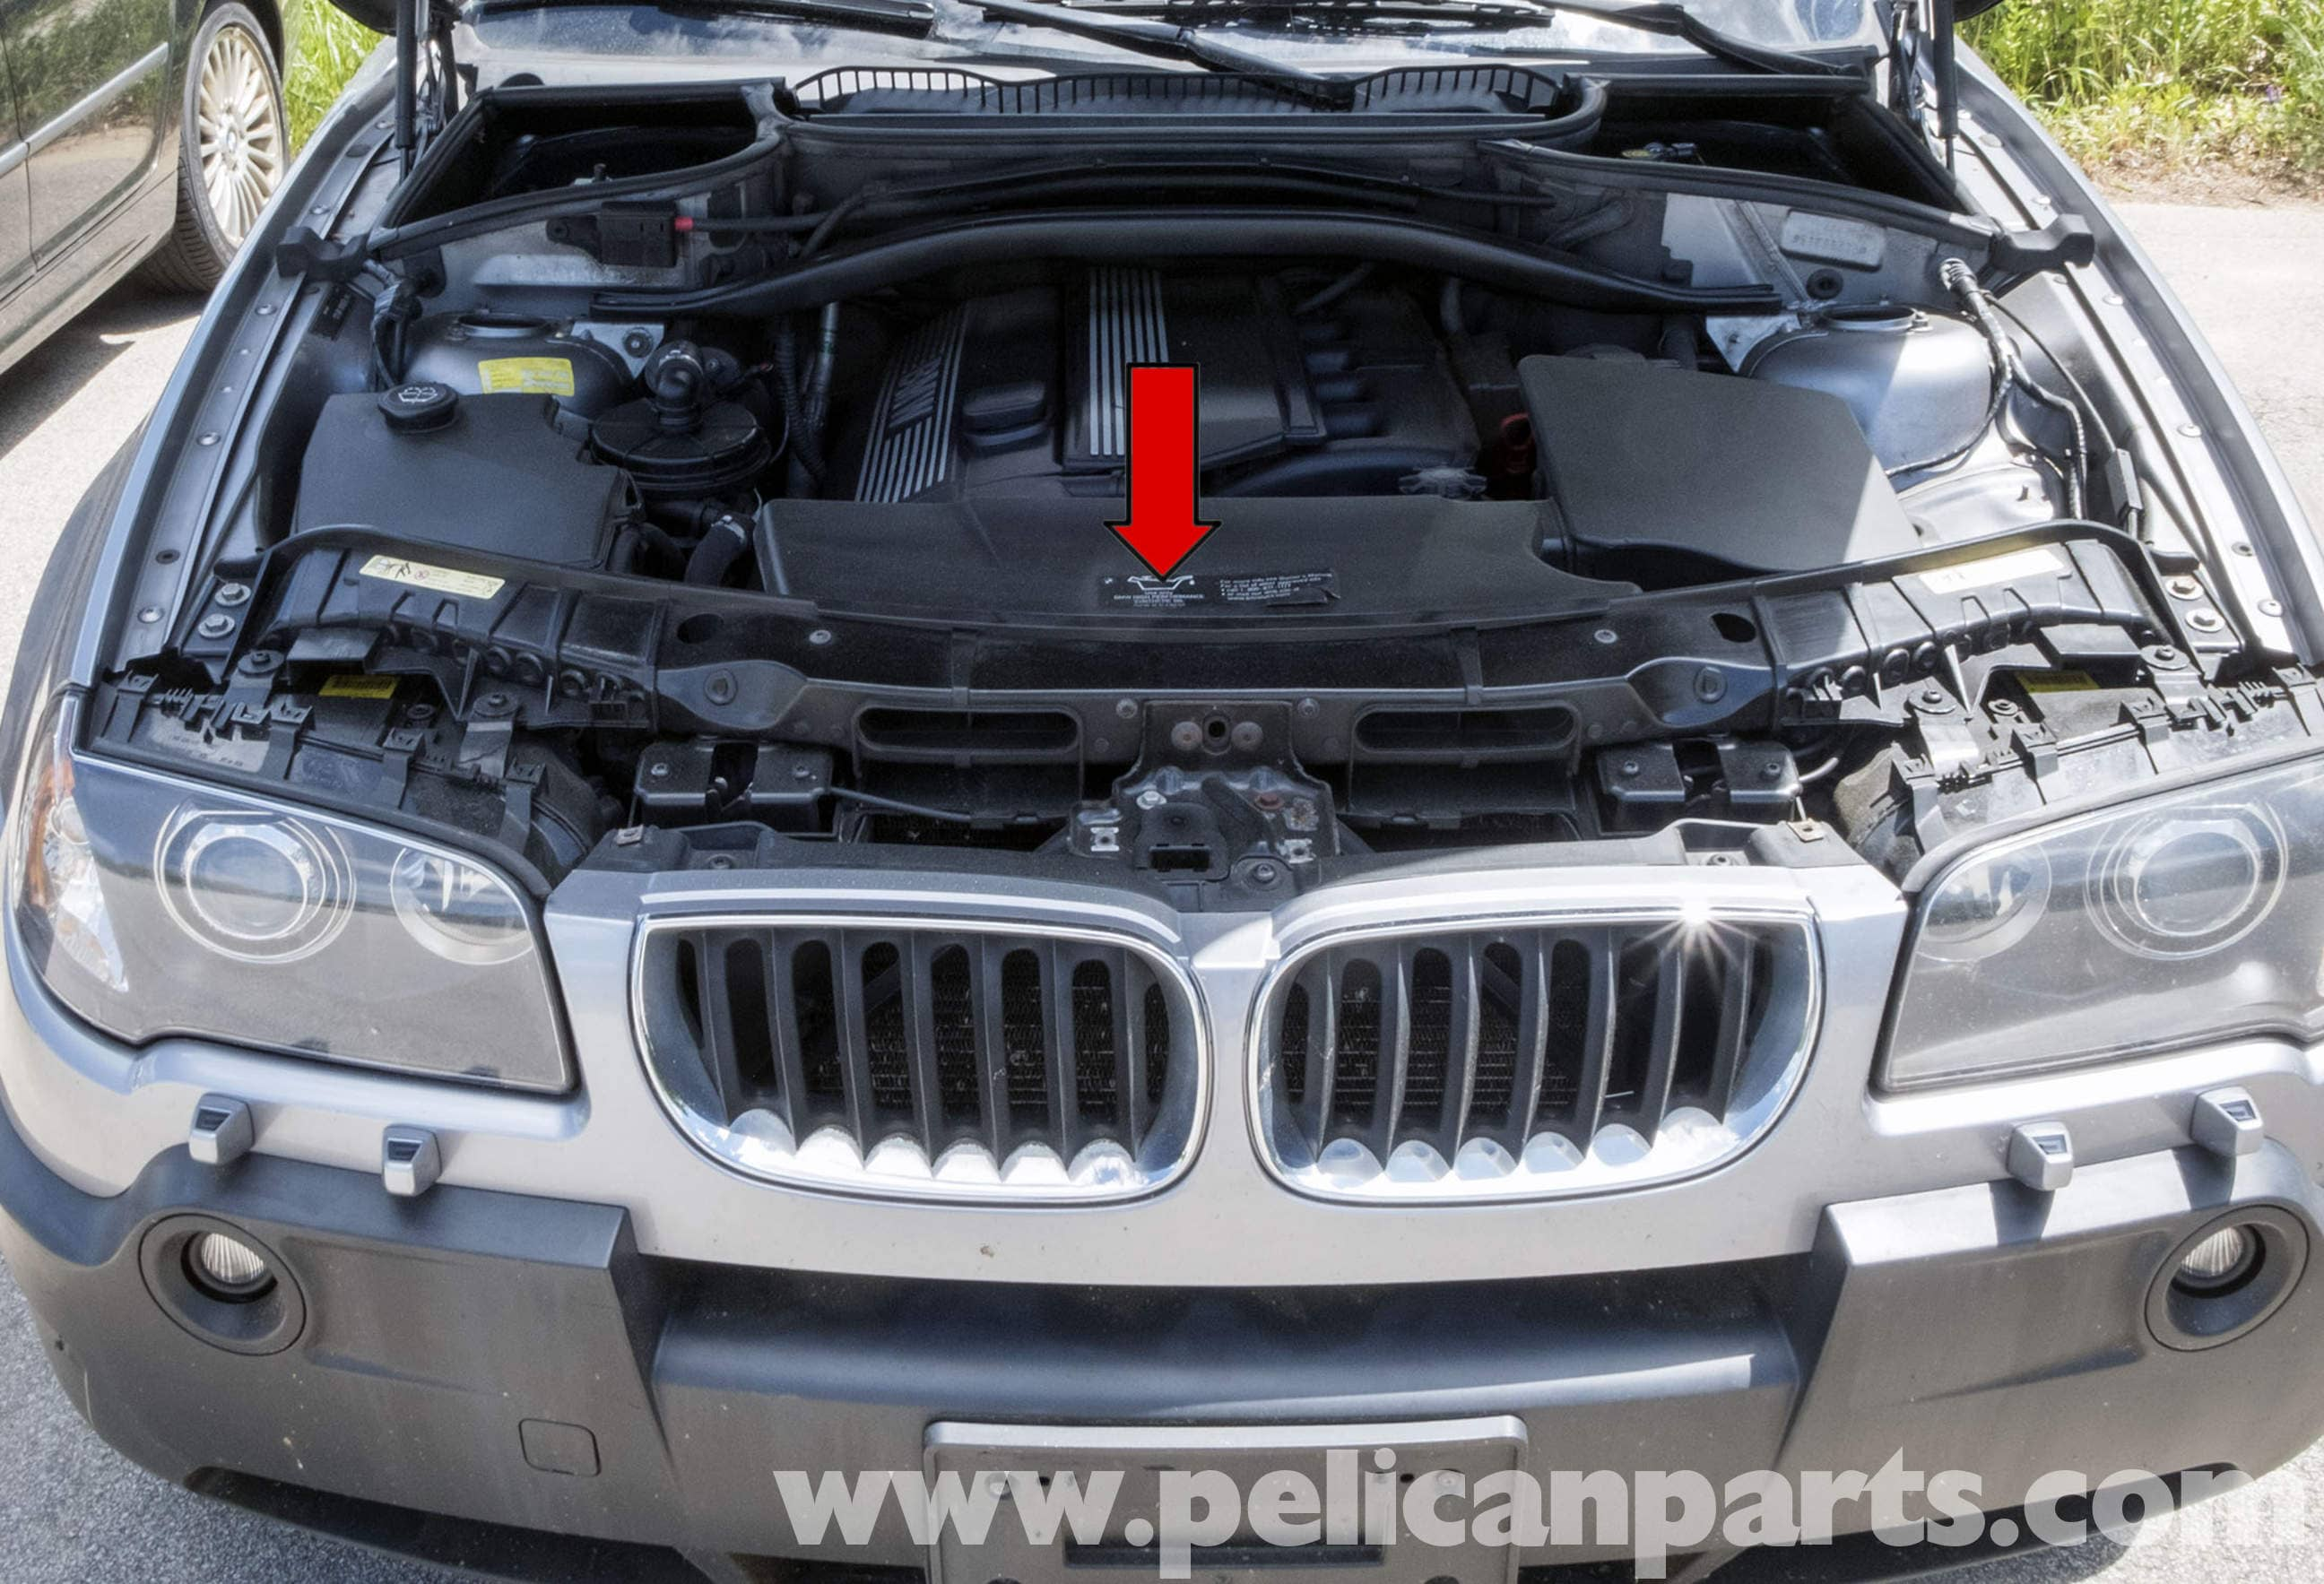 Pelican Technical Article Bmw X3 Engine Cooling Fan